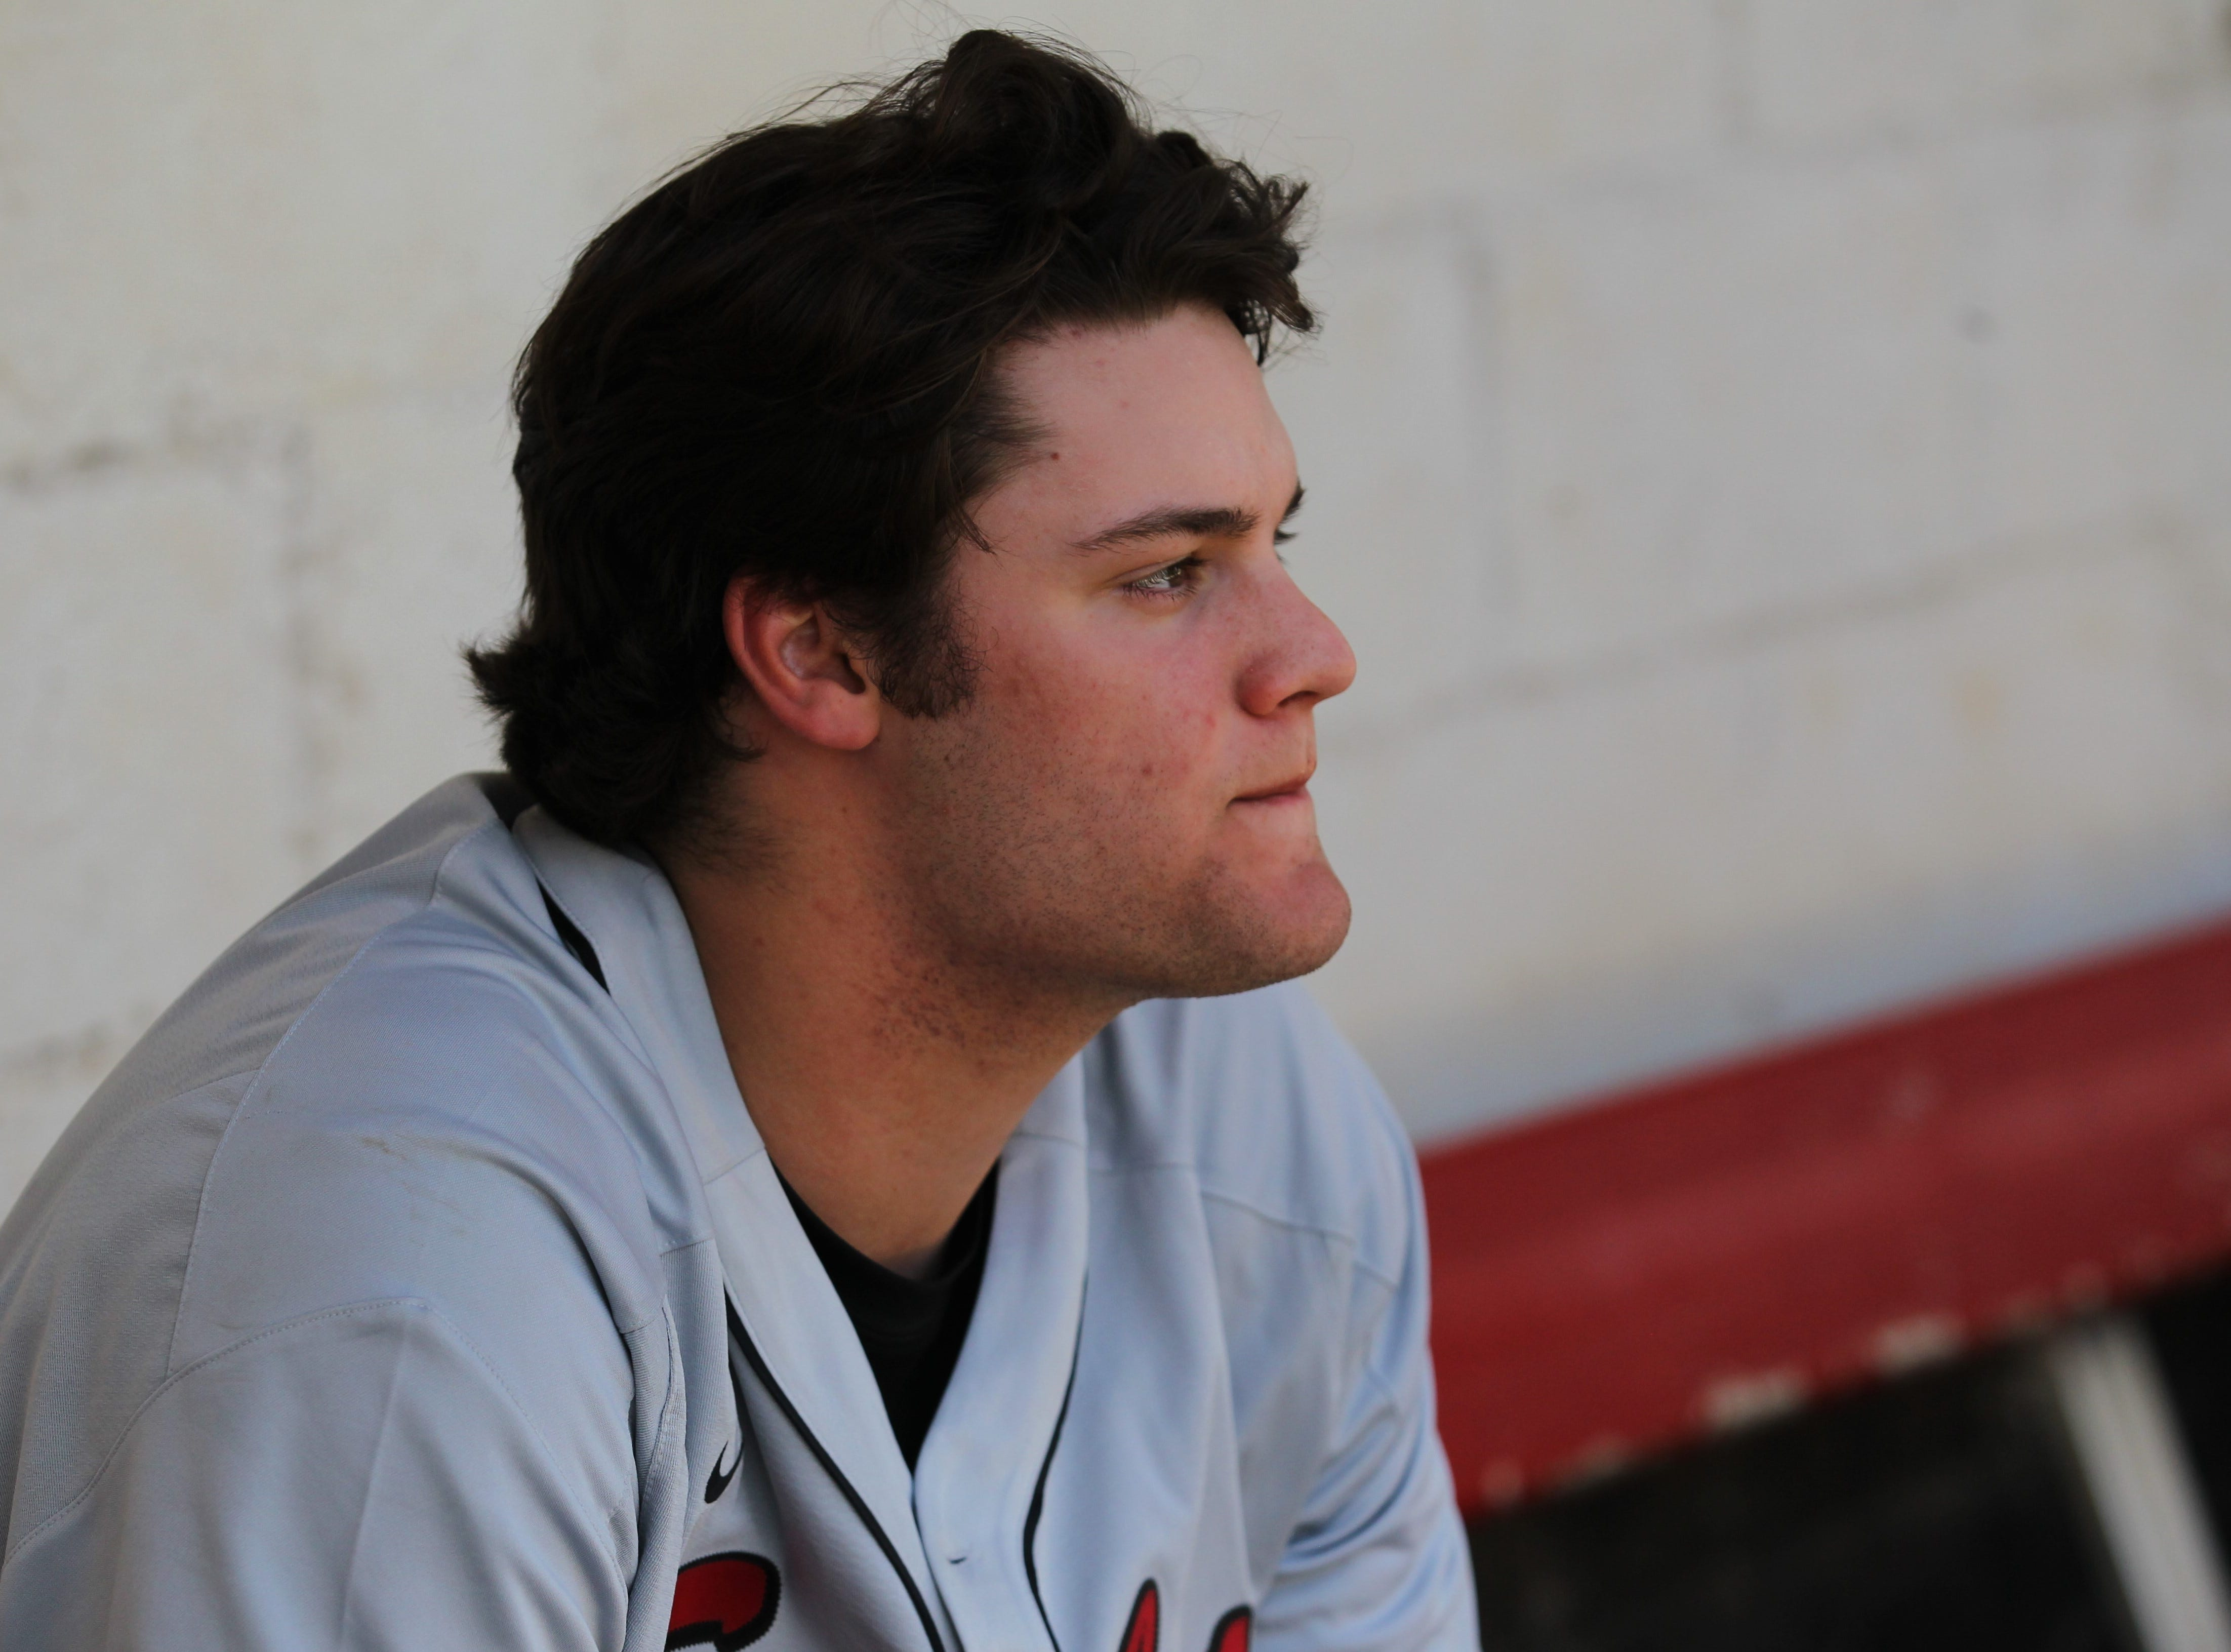 NFC senior pitcher Major Posey watches from the dugout as NFC plays at Leon during a preseason game in February.